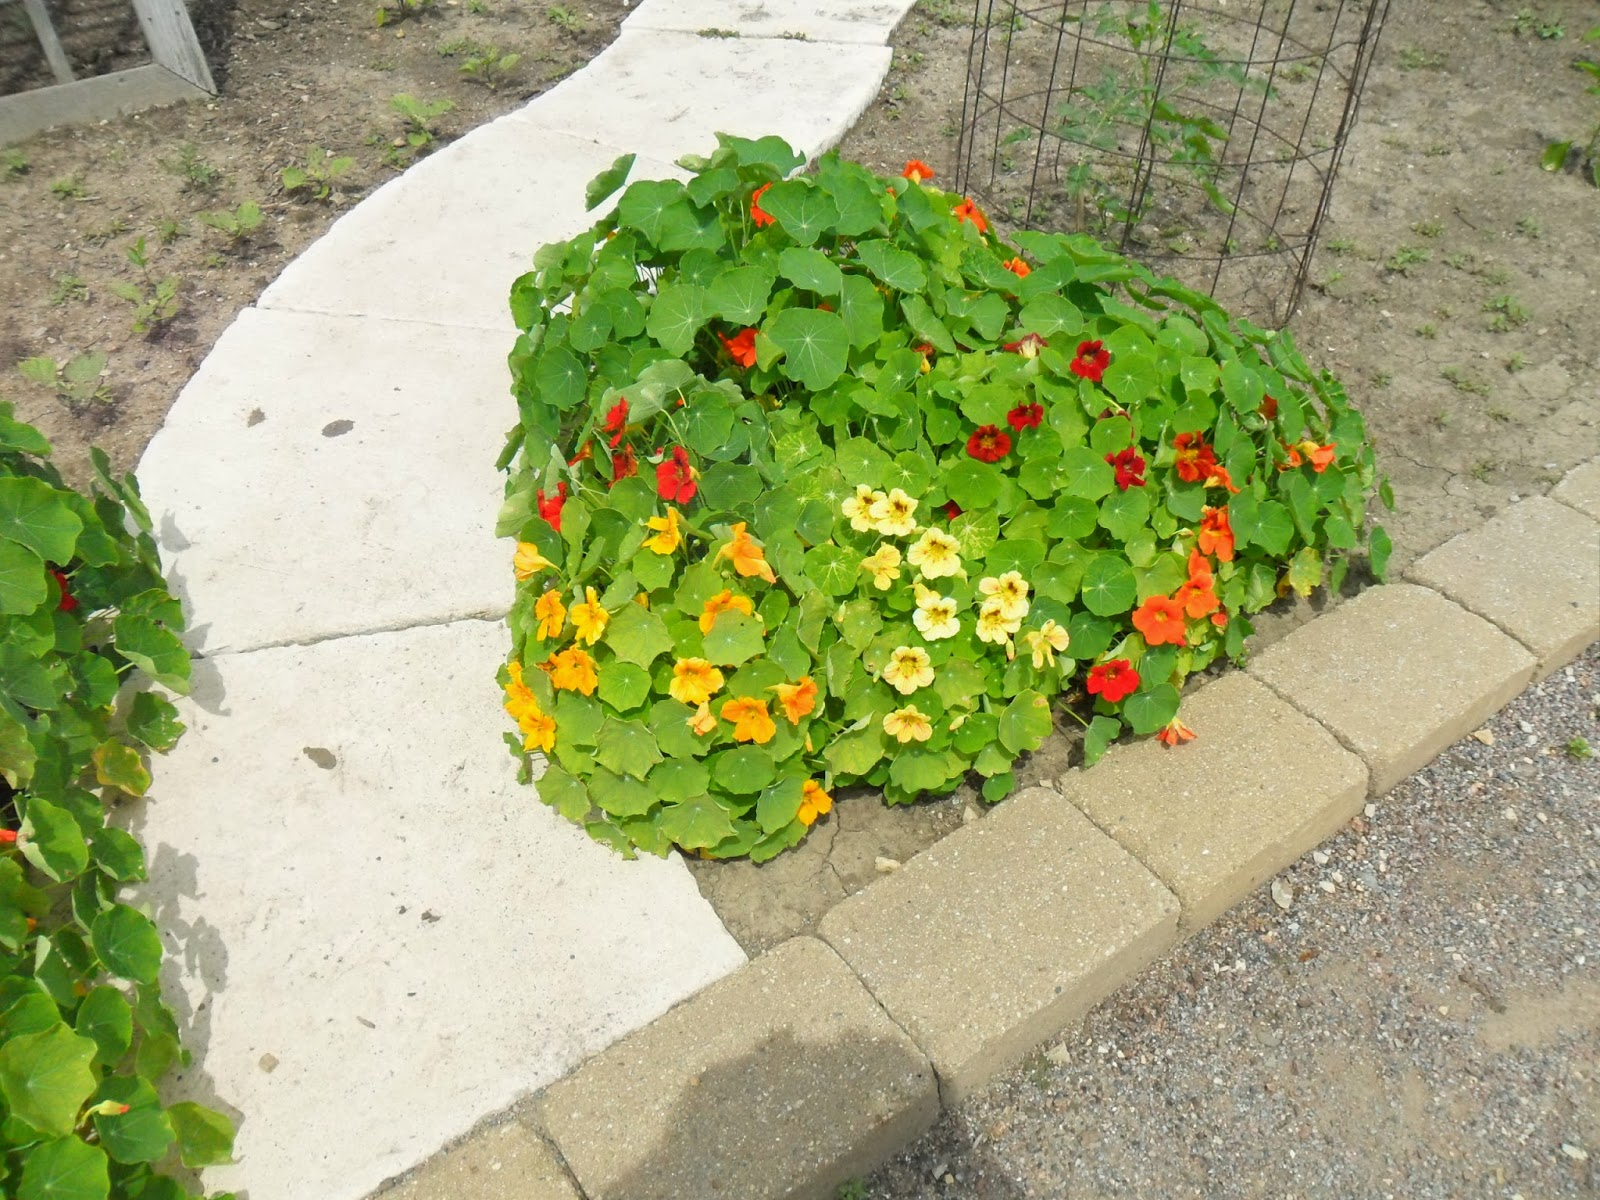 Buy culinary herbs plants nasturtium plants - Curly Parsley Is Not My Favorite Herb To Grow For Culinary Reasons But As An Attractive Plant It Does Win Some Praise Using The Bright Green As A Border